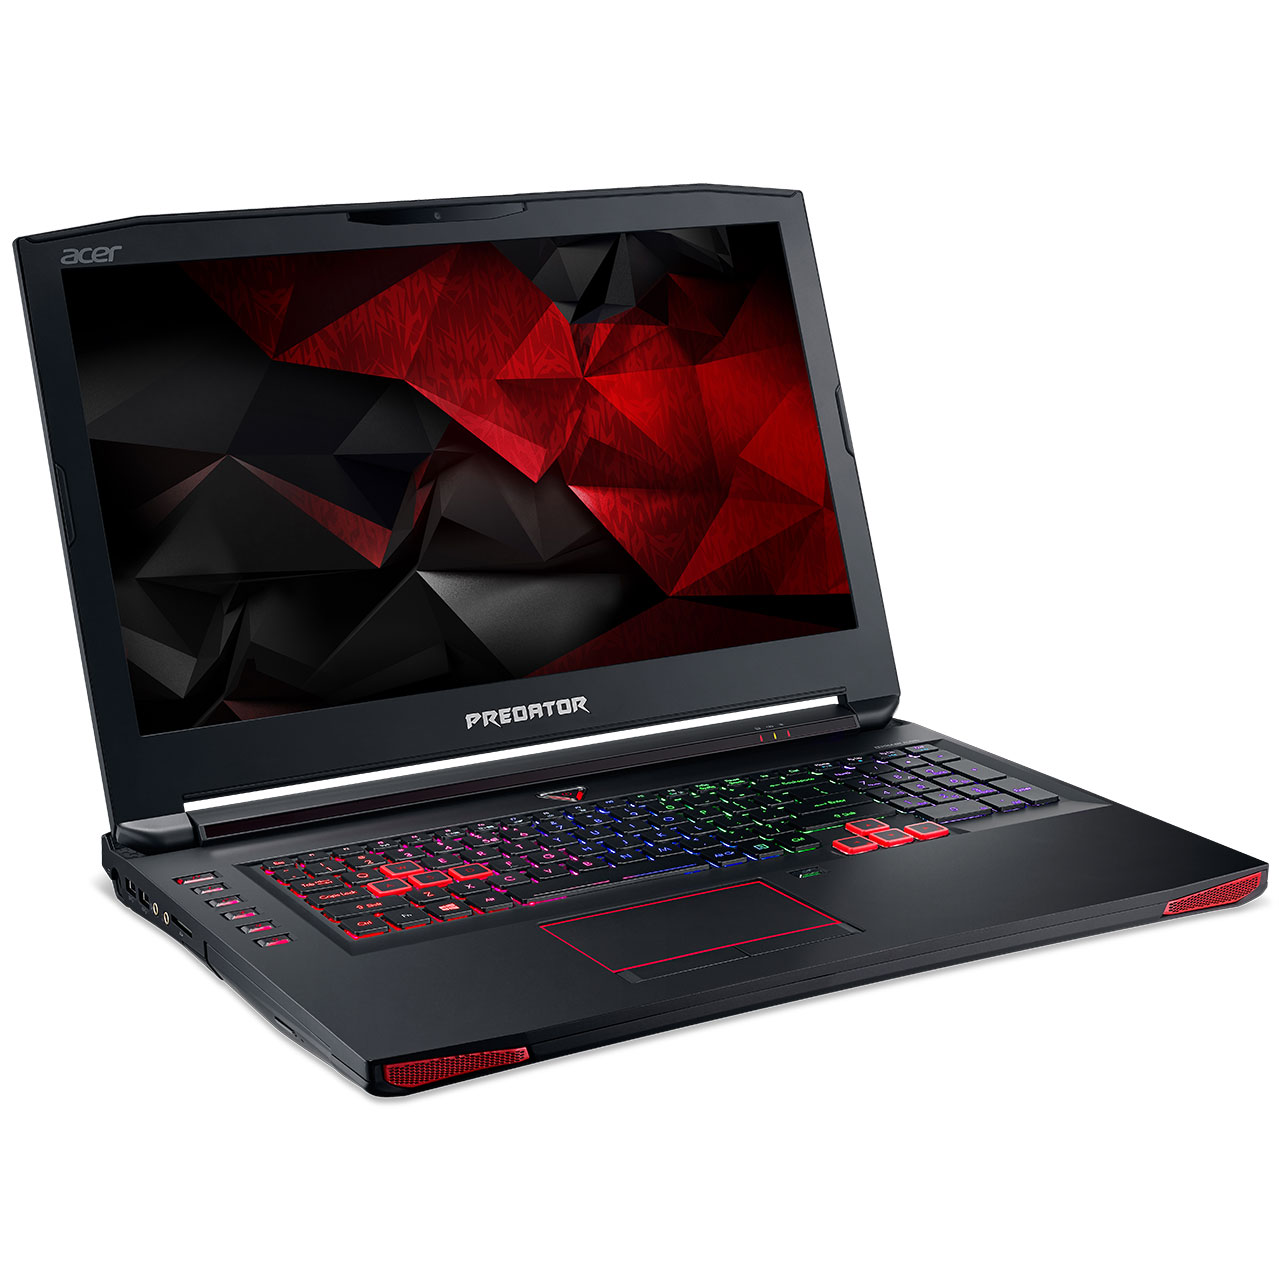 "PC portable Acer Predator 17 G9-793-74EJ Intel Core i7-6700HQ 16 Go SSD 128 Go + HDD 1 To 17.3"" LED Full HD G-Sync NVIDIA GeForce GTX 1070 8 Go Wi-Fi AC/Bluetooth Webcam Windows 10 Famille (garantie constructeur 2 ans)"